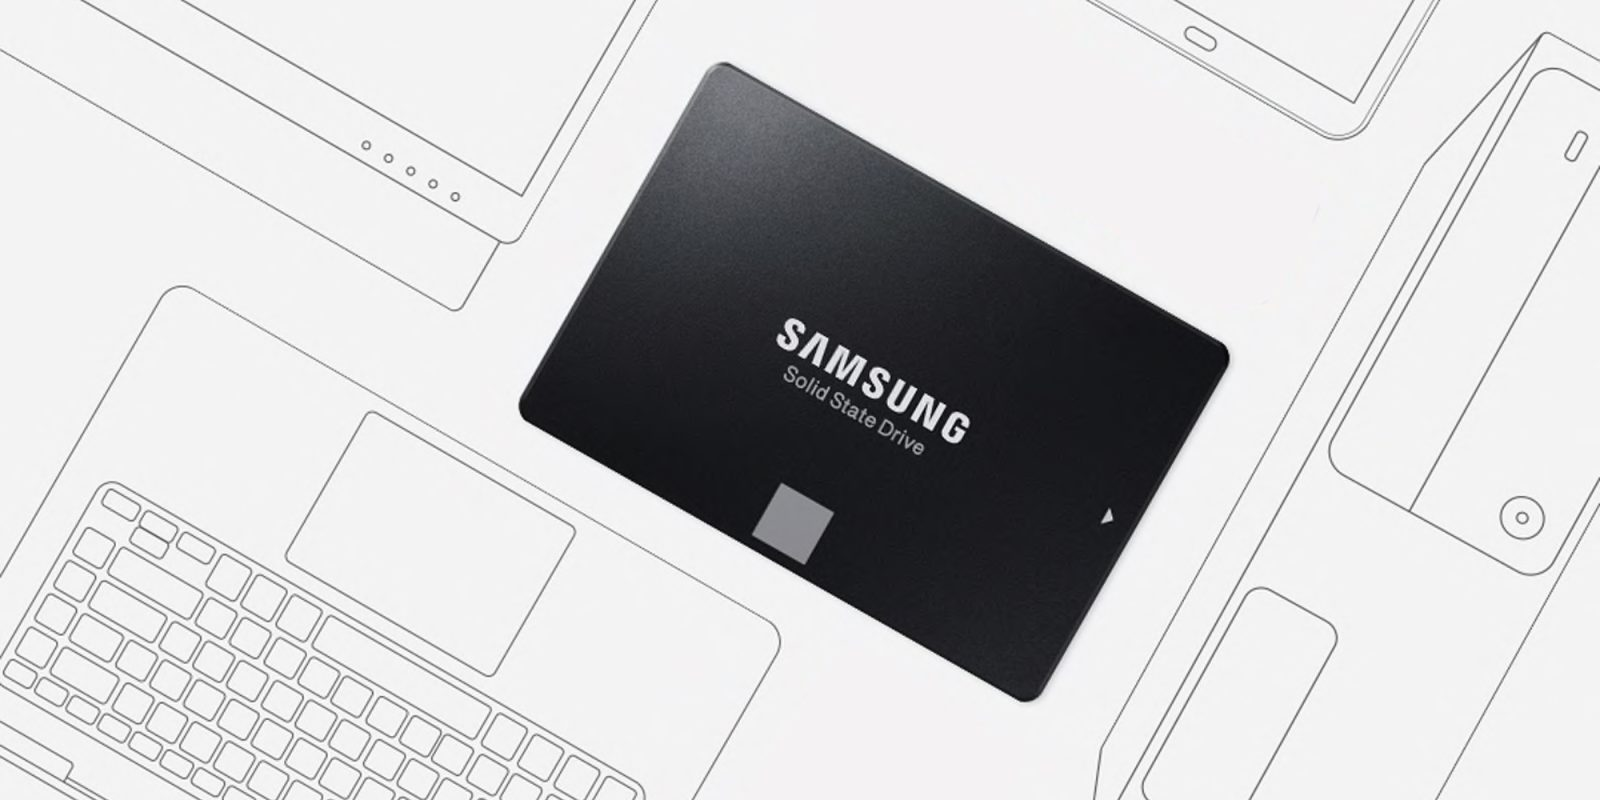 Samsung's 860 EVO 500GB 2.5-inch SSD hits one of its best prices yet at $60